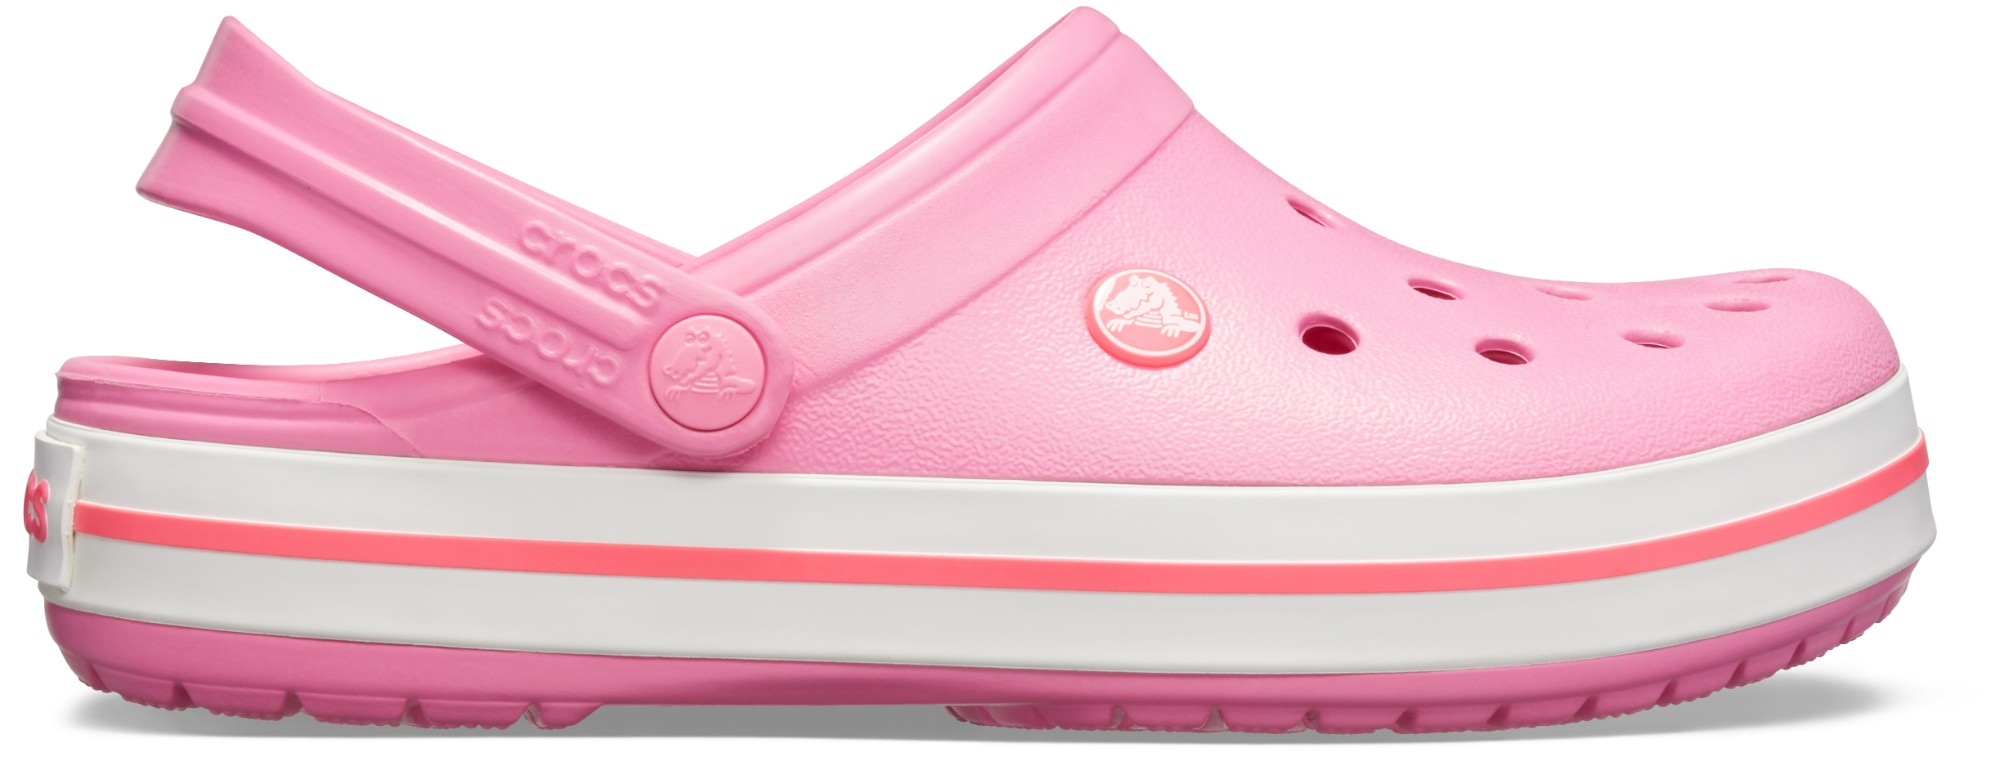 Crocs™ Crocband™ Pink Lemonade/White 38,5